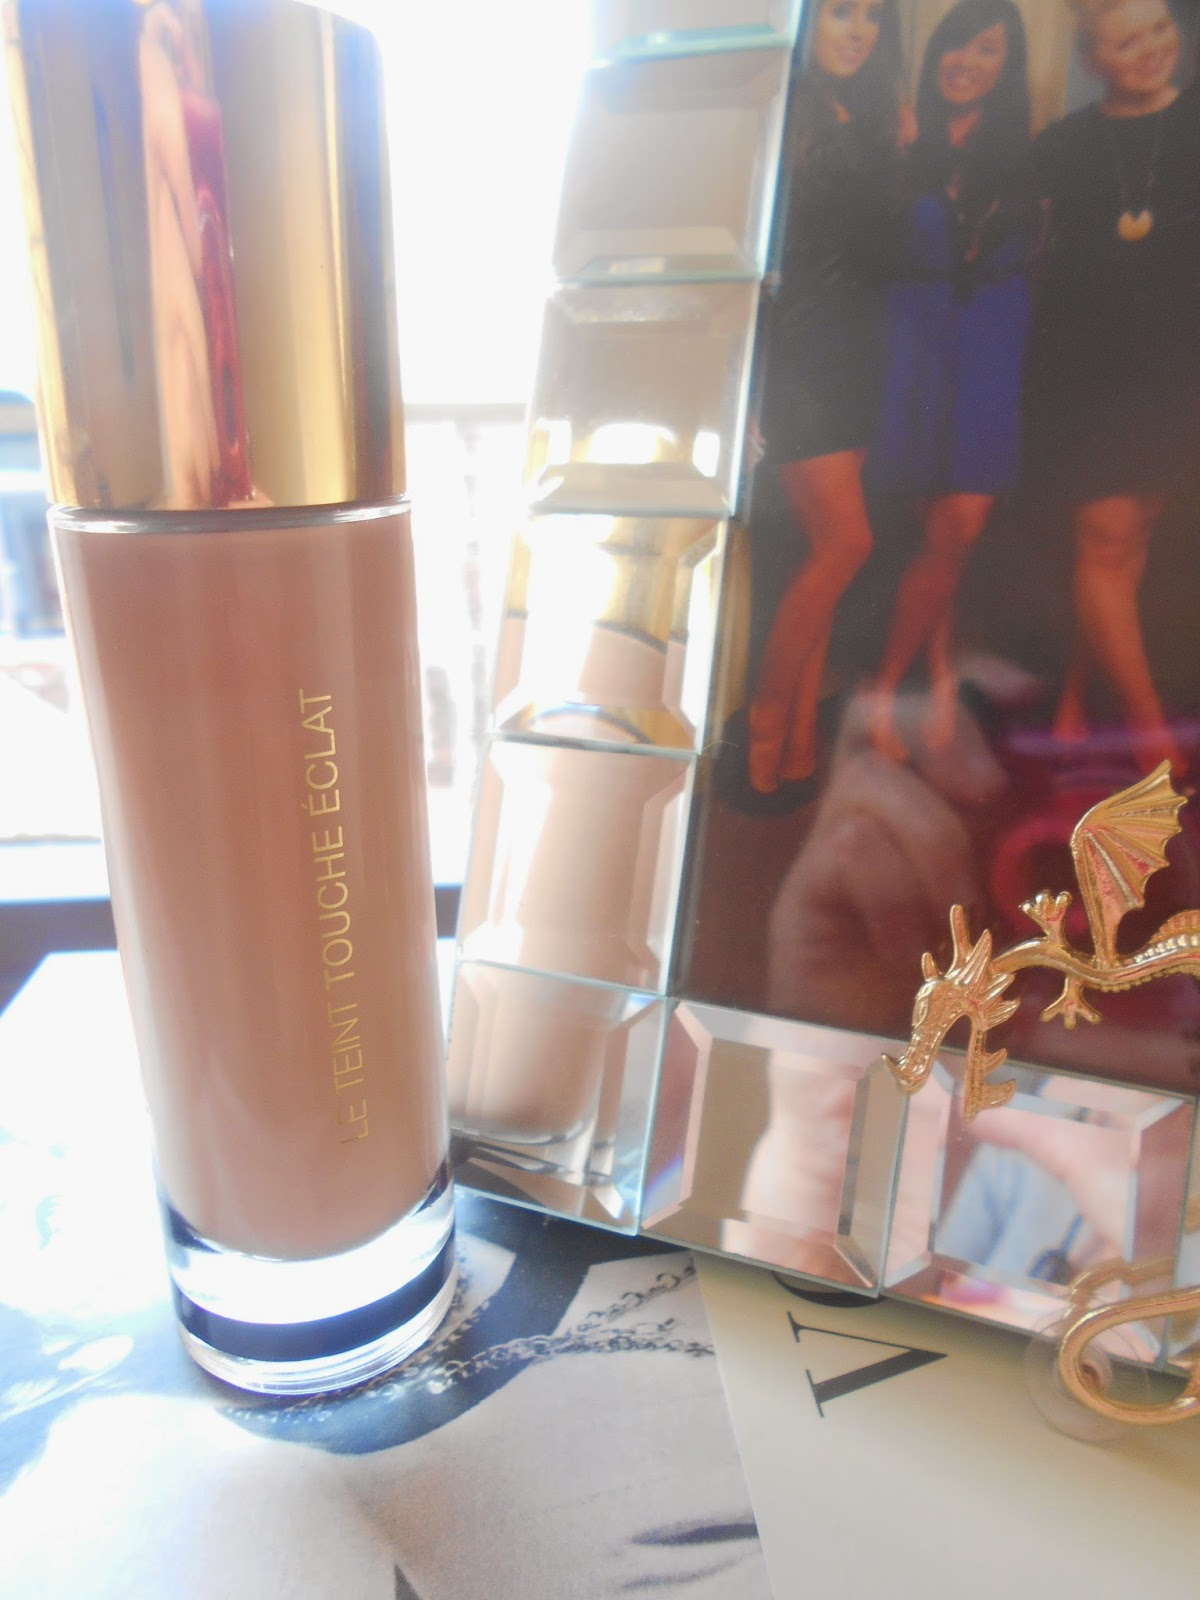 My Favorite Beauty Buy EVER! Yves Saint Laurent Le Teint Touche Eclat Foundation